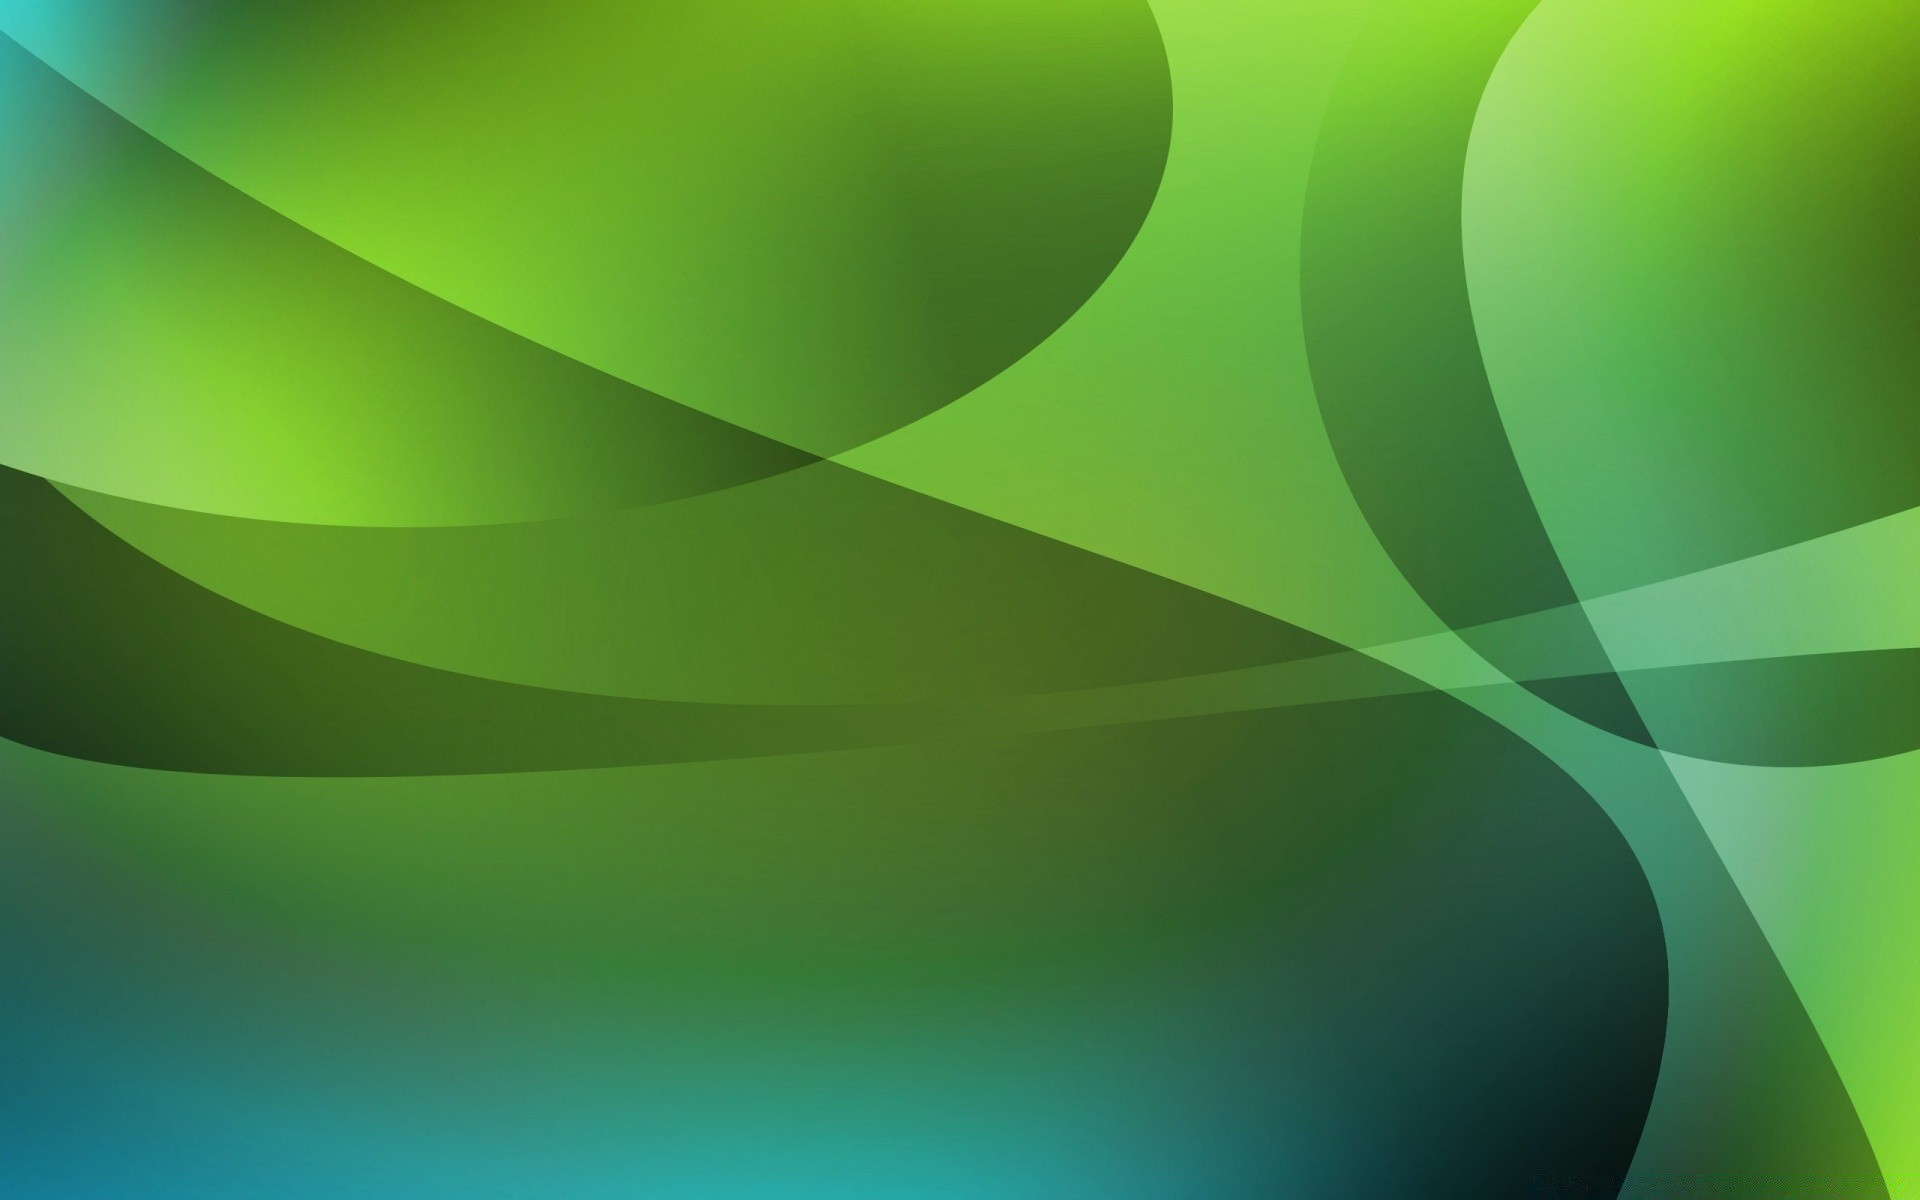 Abstract Graphic Design Green Android Wallpapers For Free